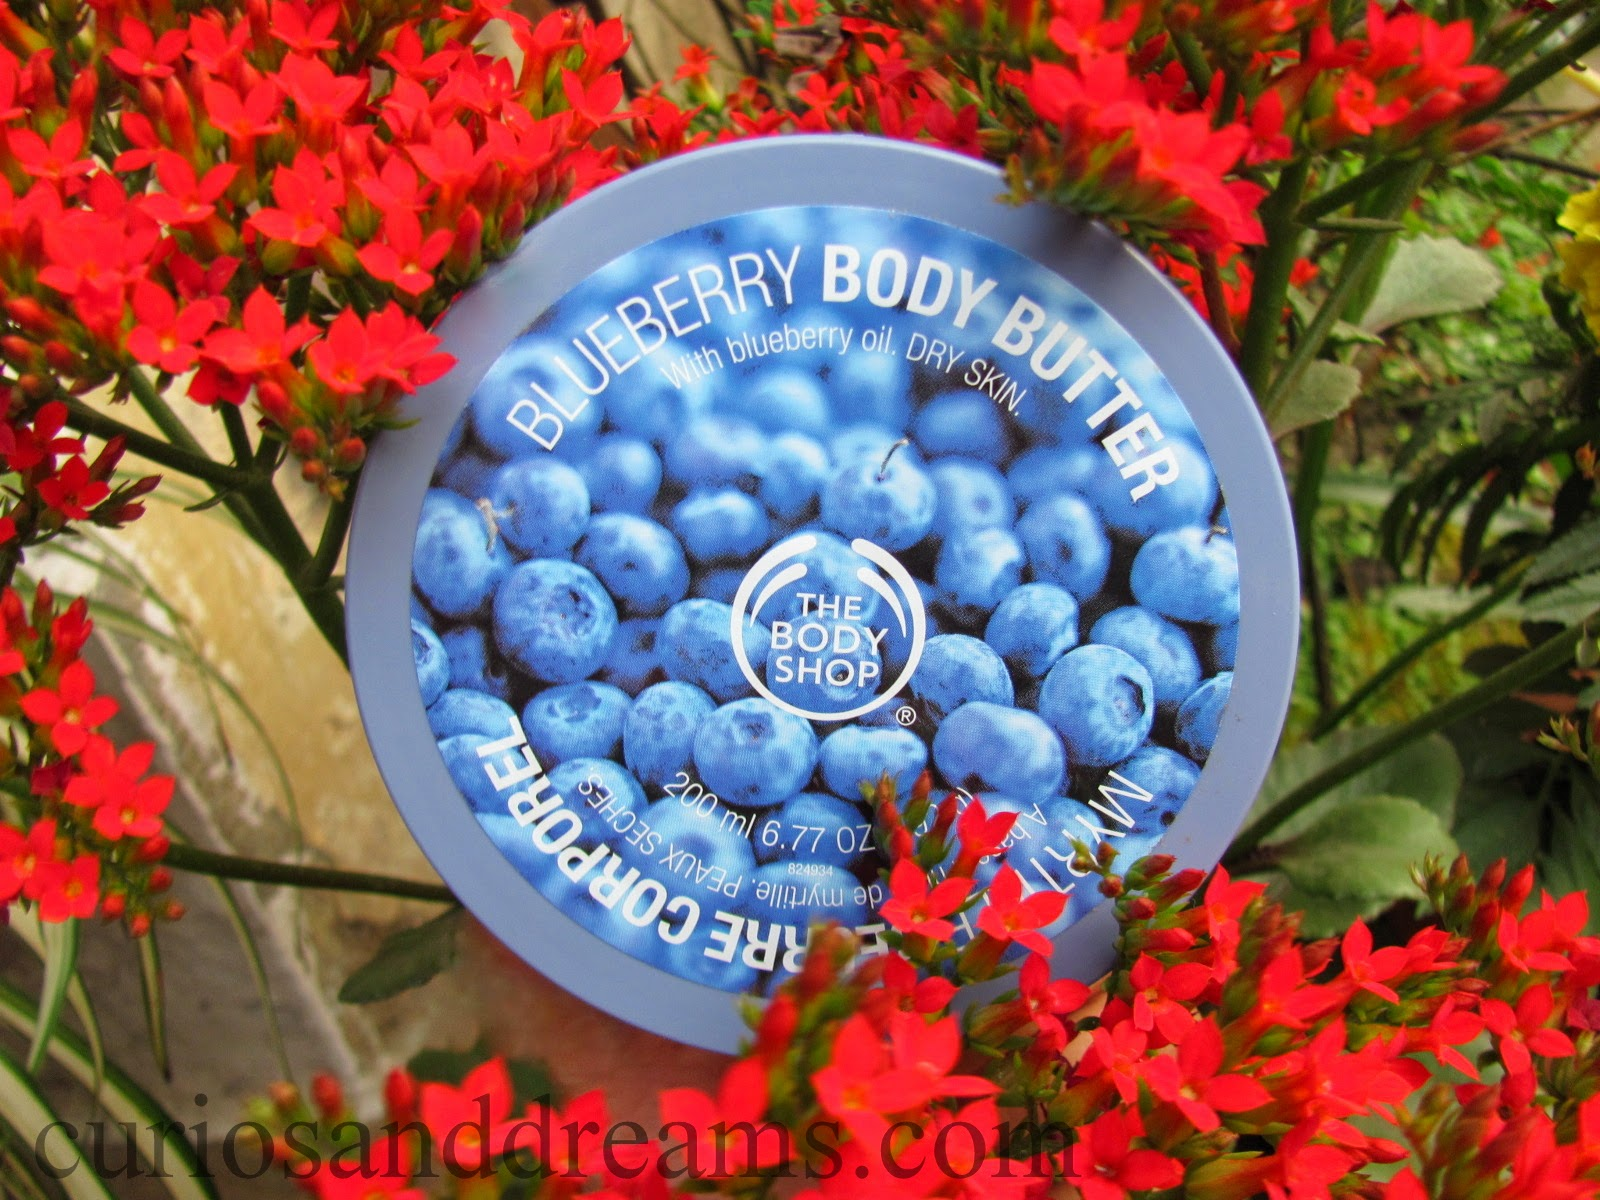 The Body Shop Blueberry Body Butter review, Blueberry Body Butter review